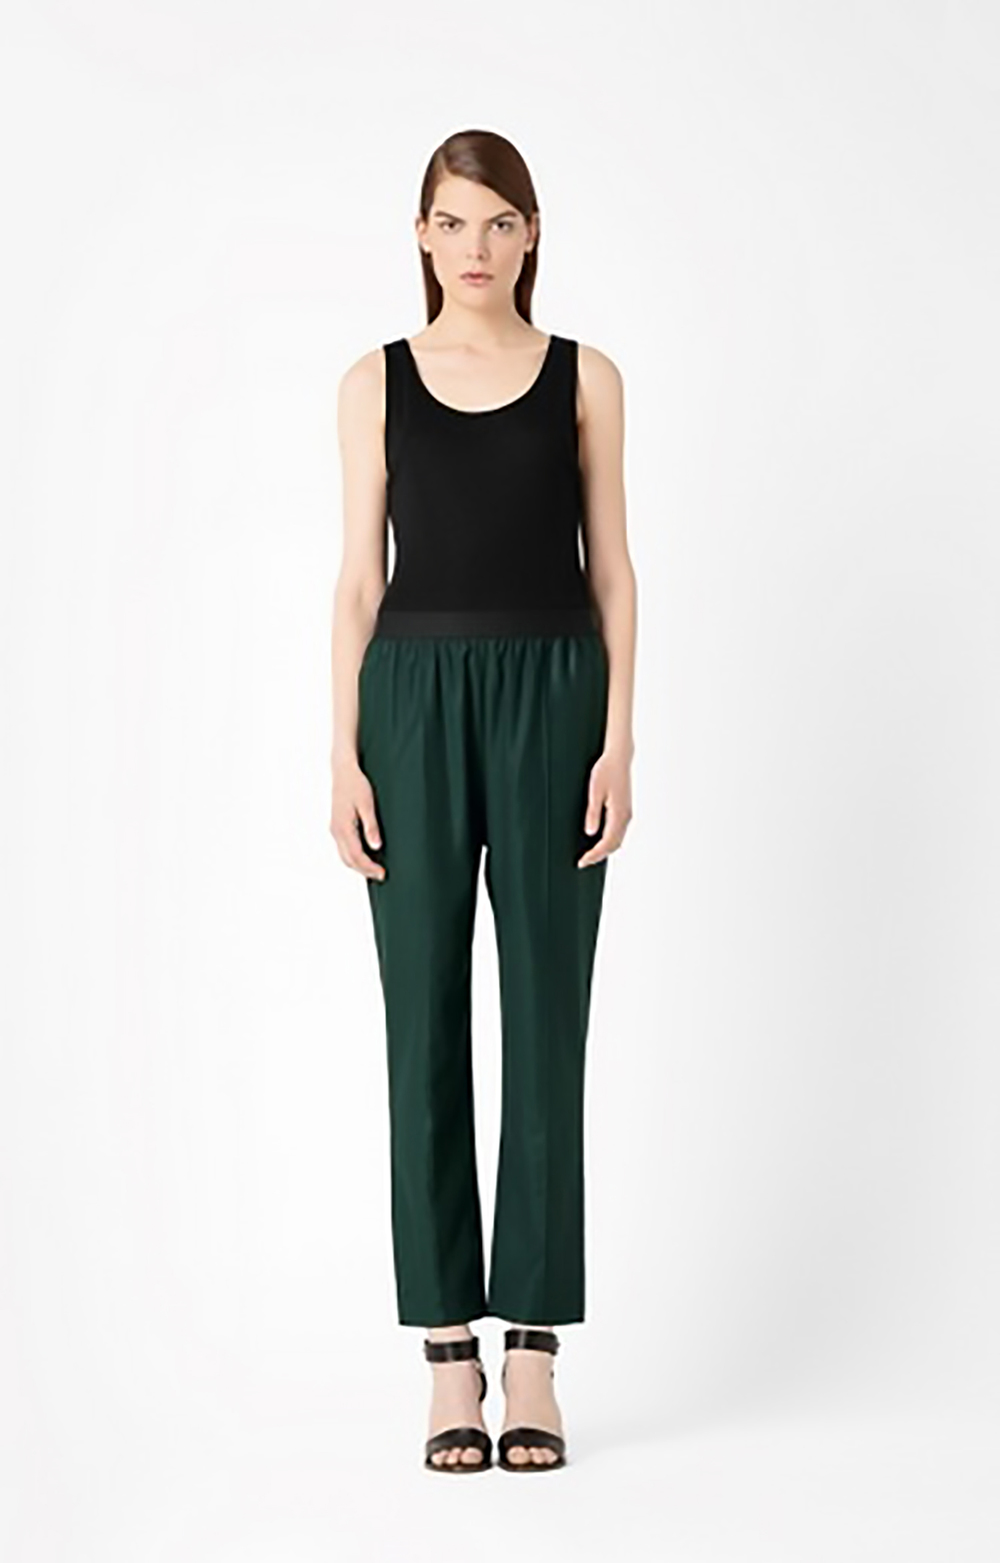 cos gathered waist trousers COS 1500.jpg